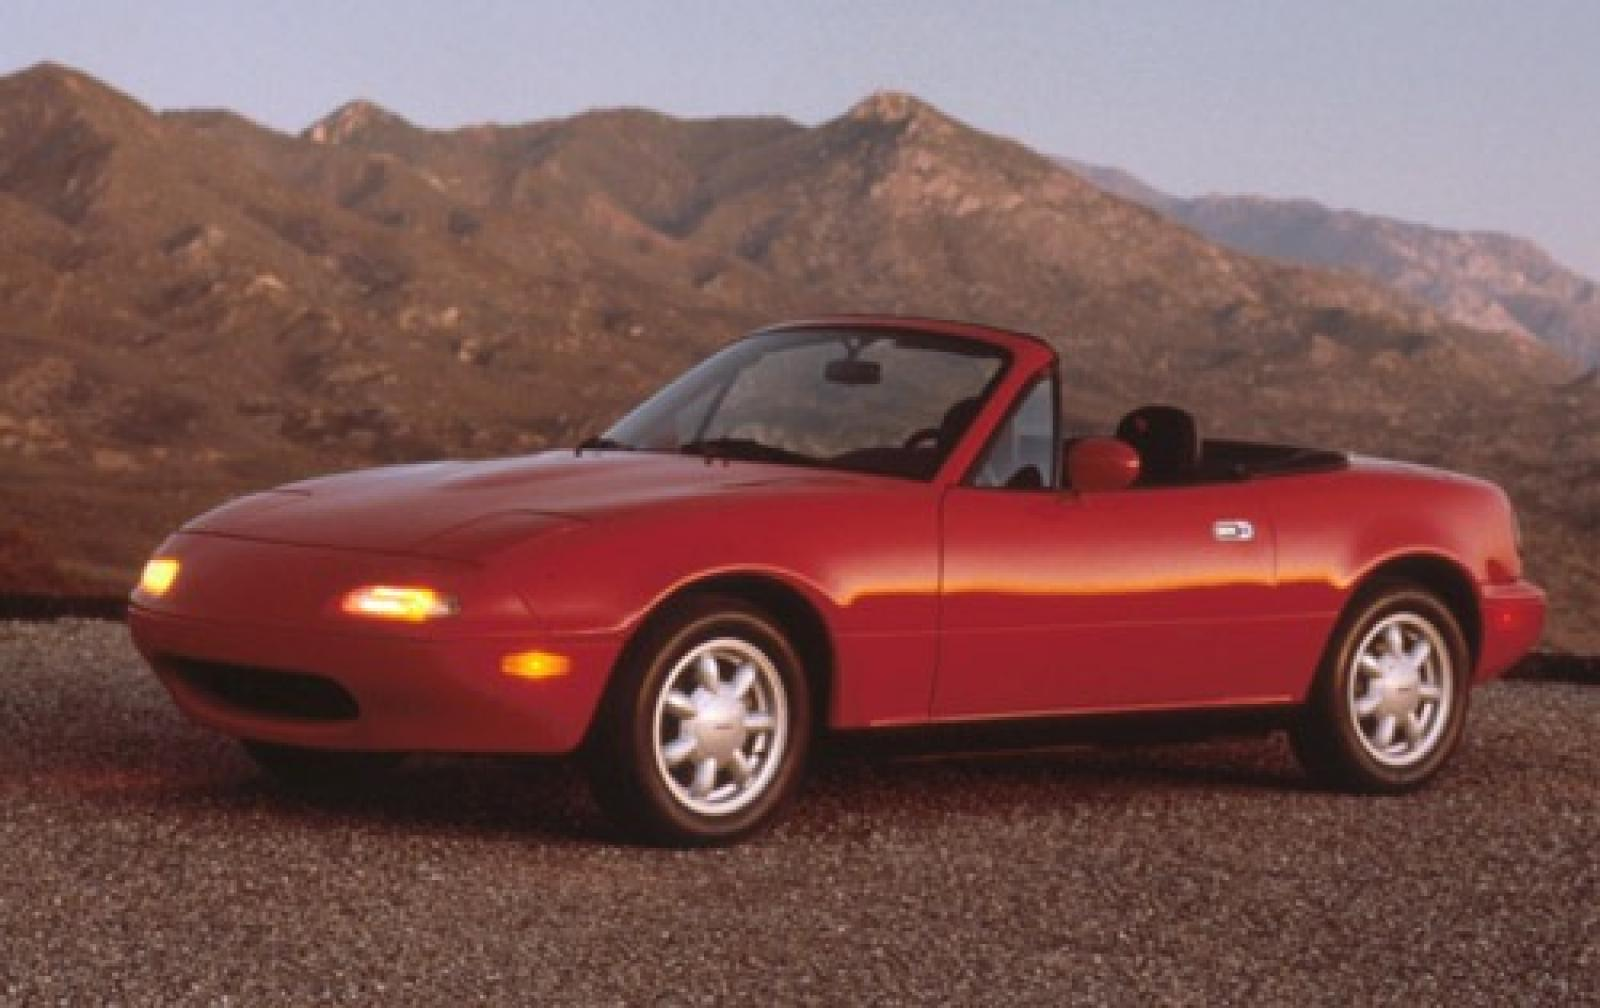 1990 mazda mx 5 miata information and photos zombiedrive. Black Bedroom Furniture Sets. Home Design Ideas